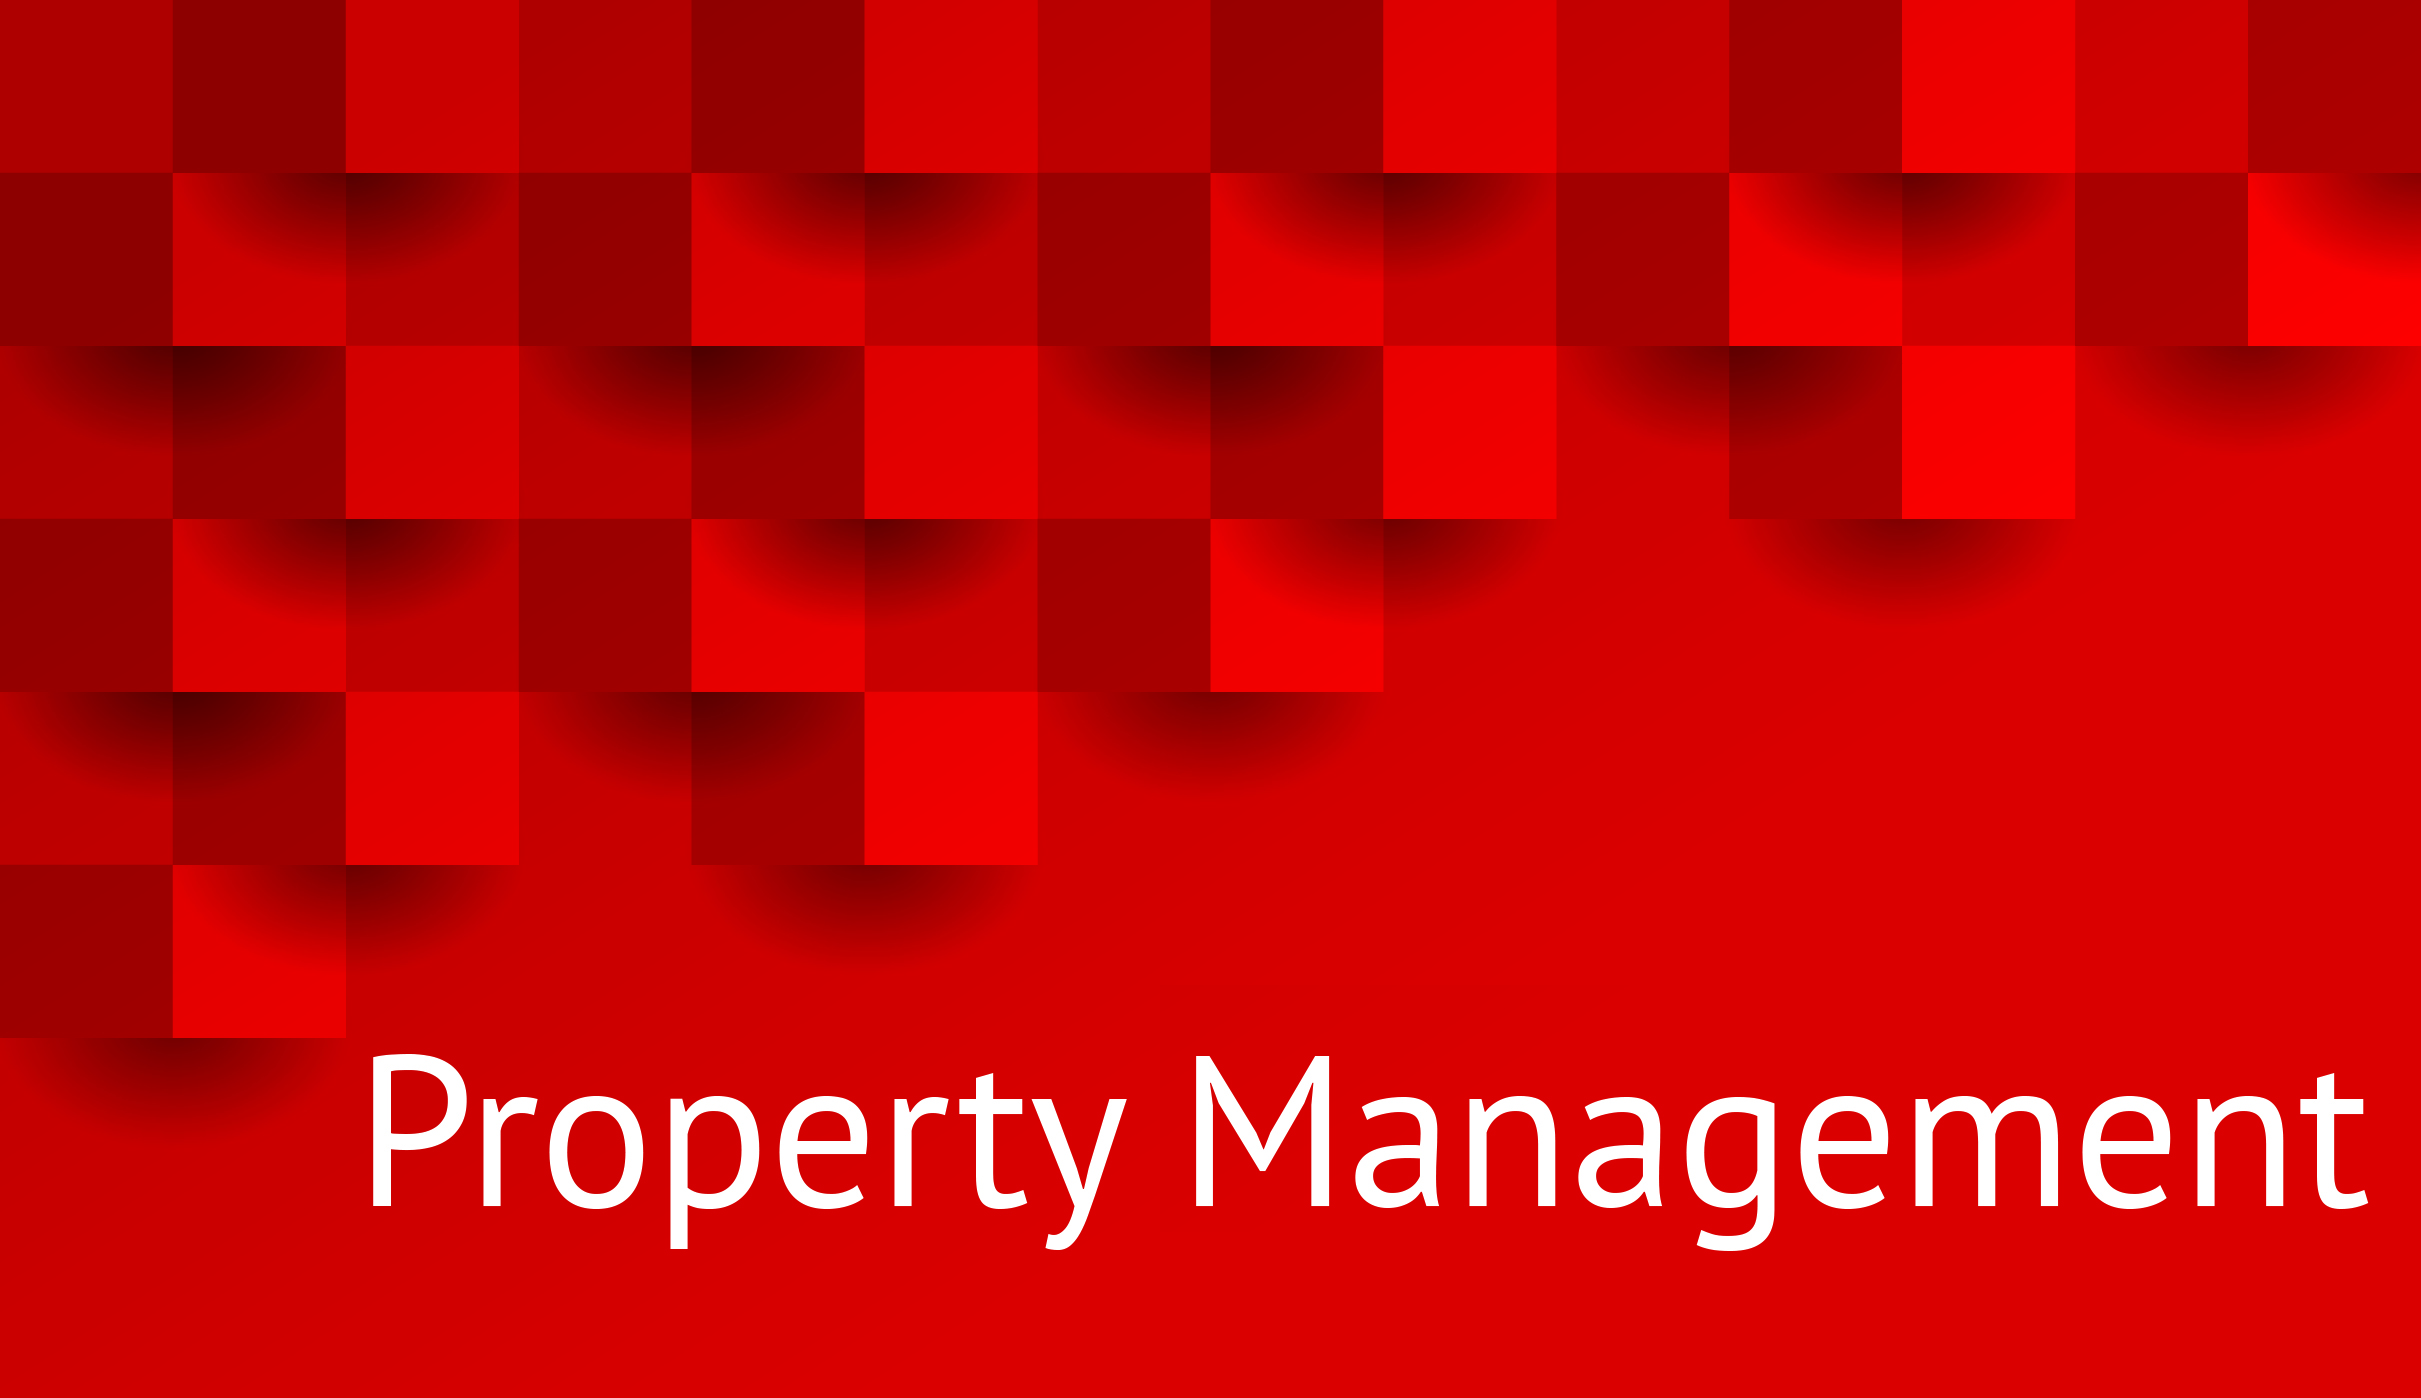 Cornerstone Property Management Services Inc